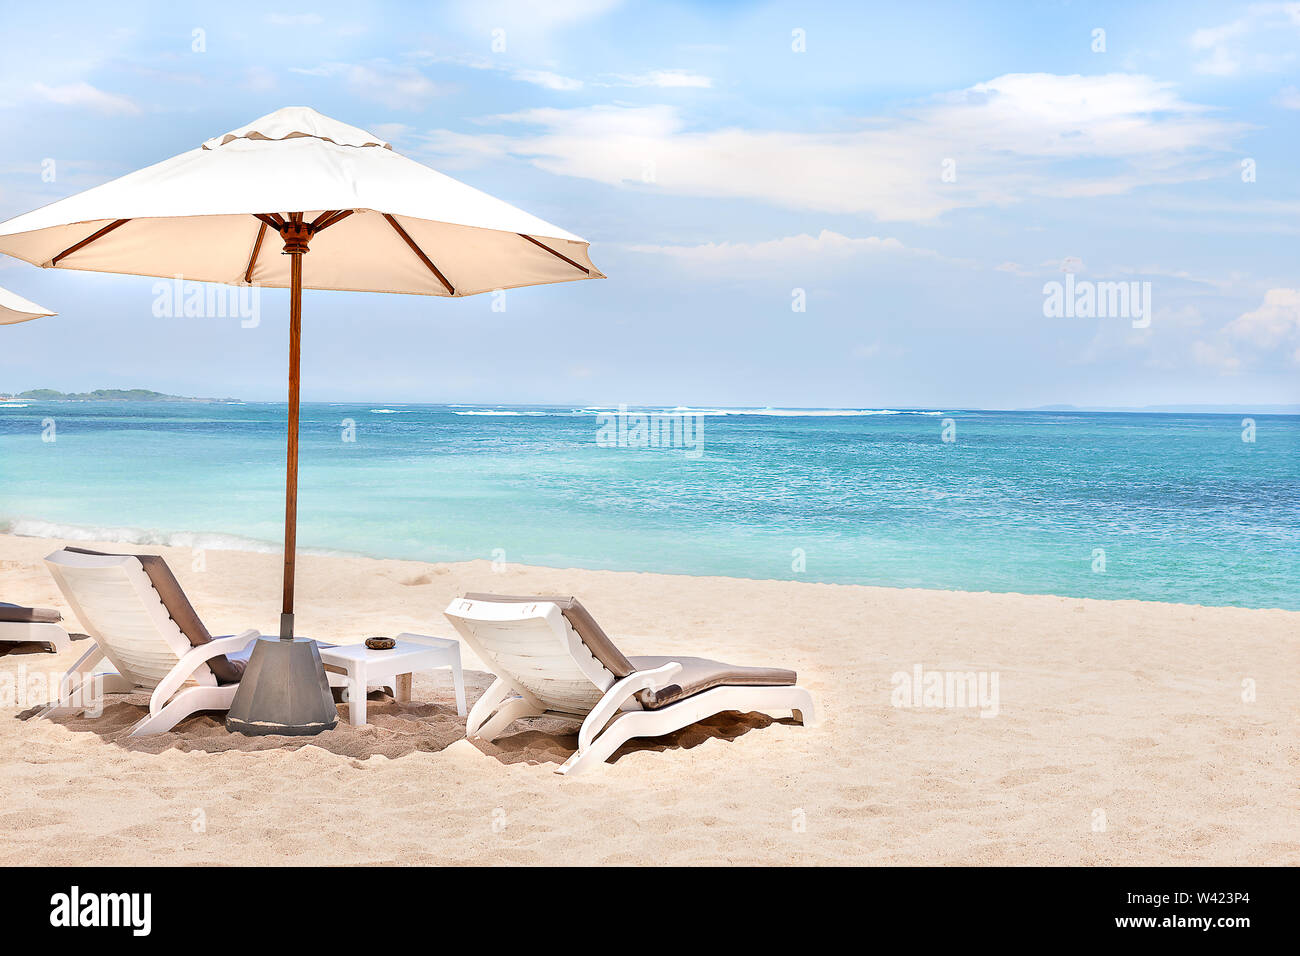 Beach side rest chairs and umbrellas on the sand near the blue water and horizon - Stock Image